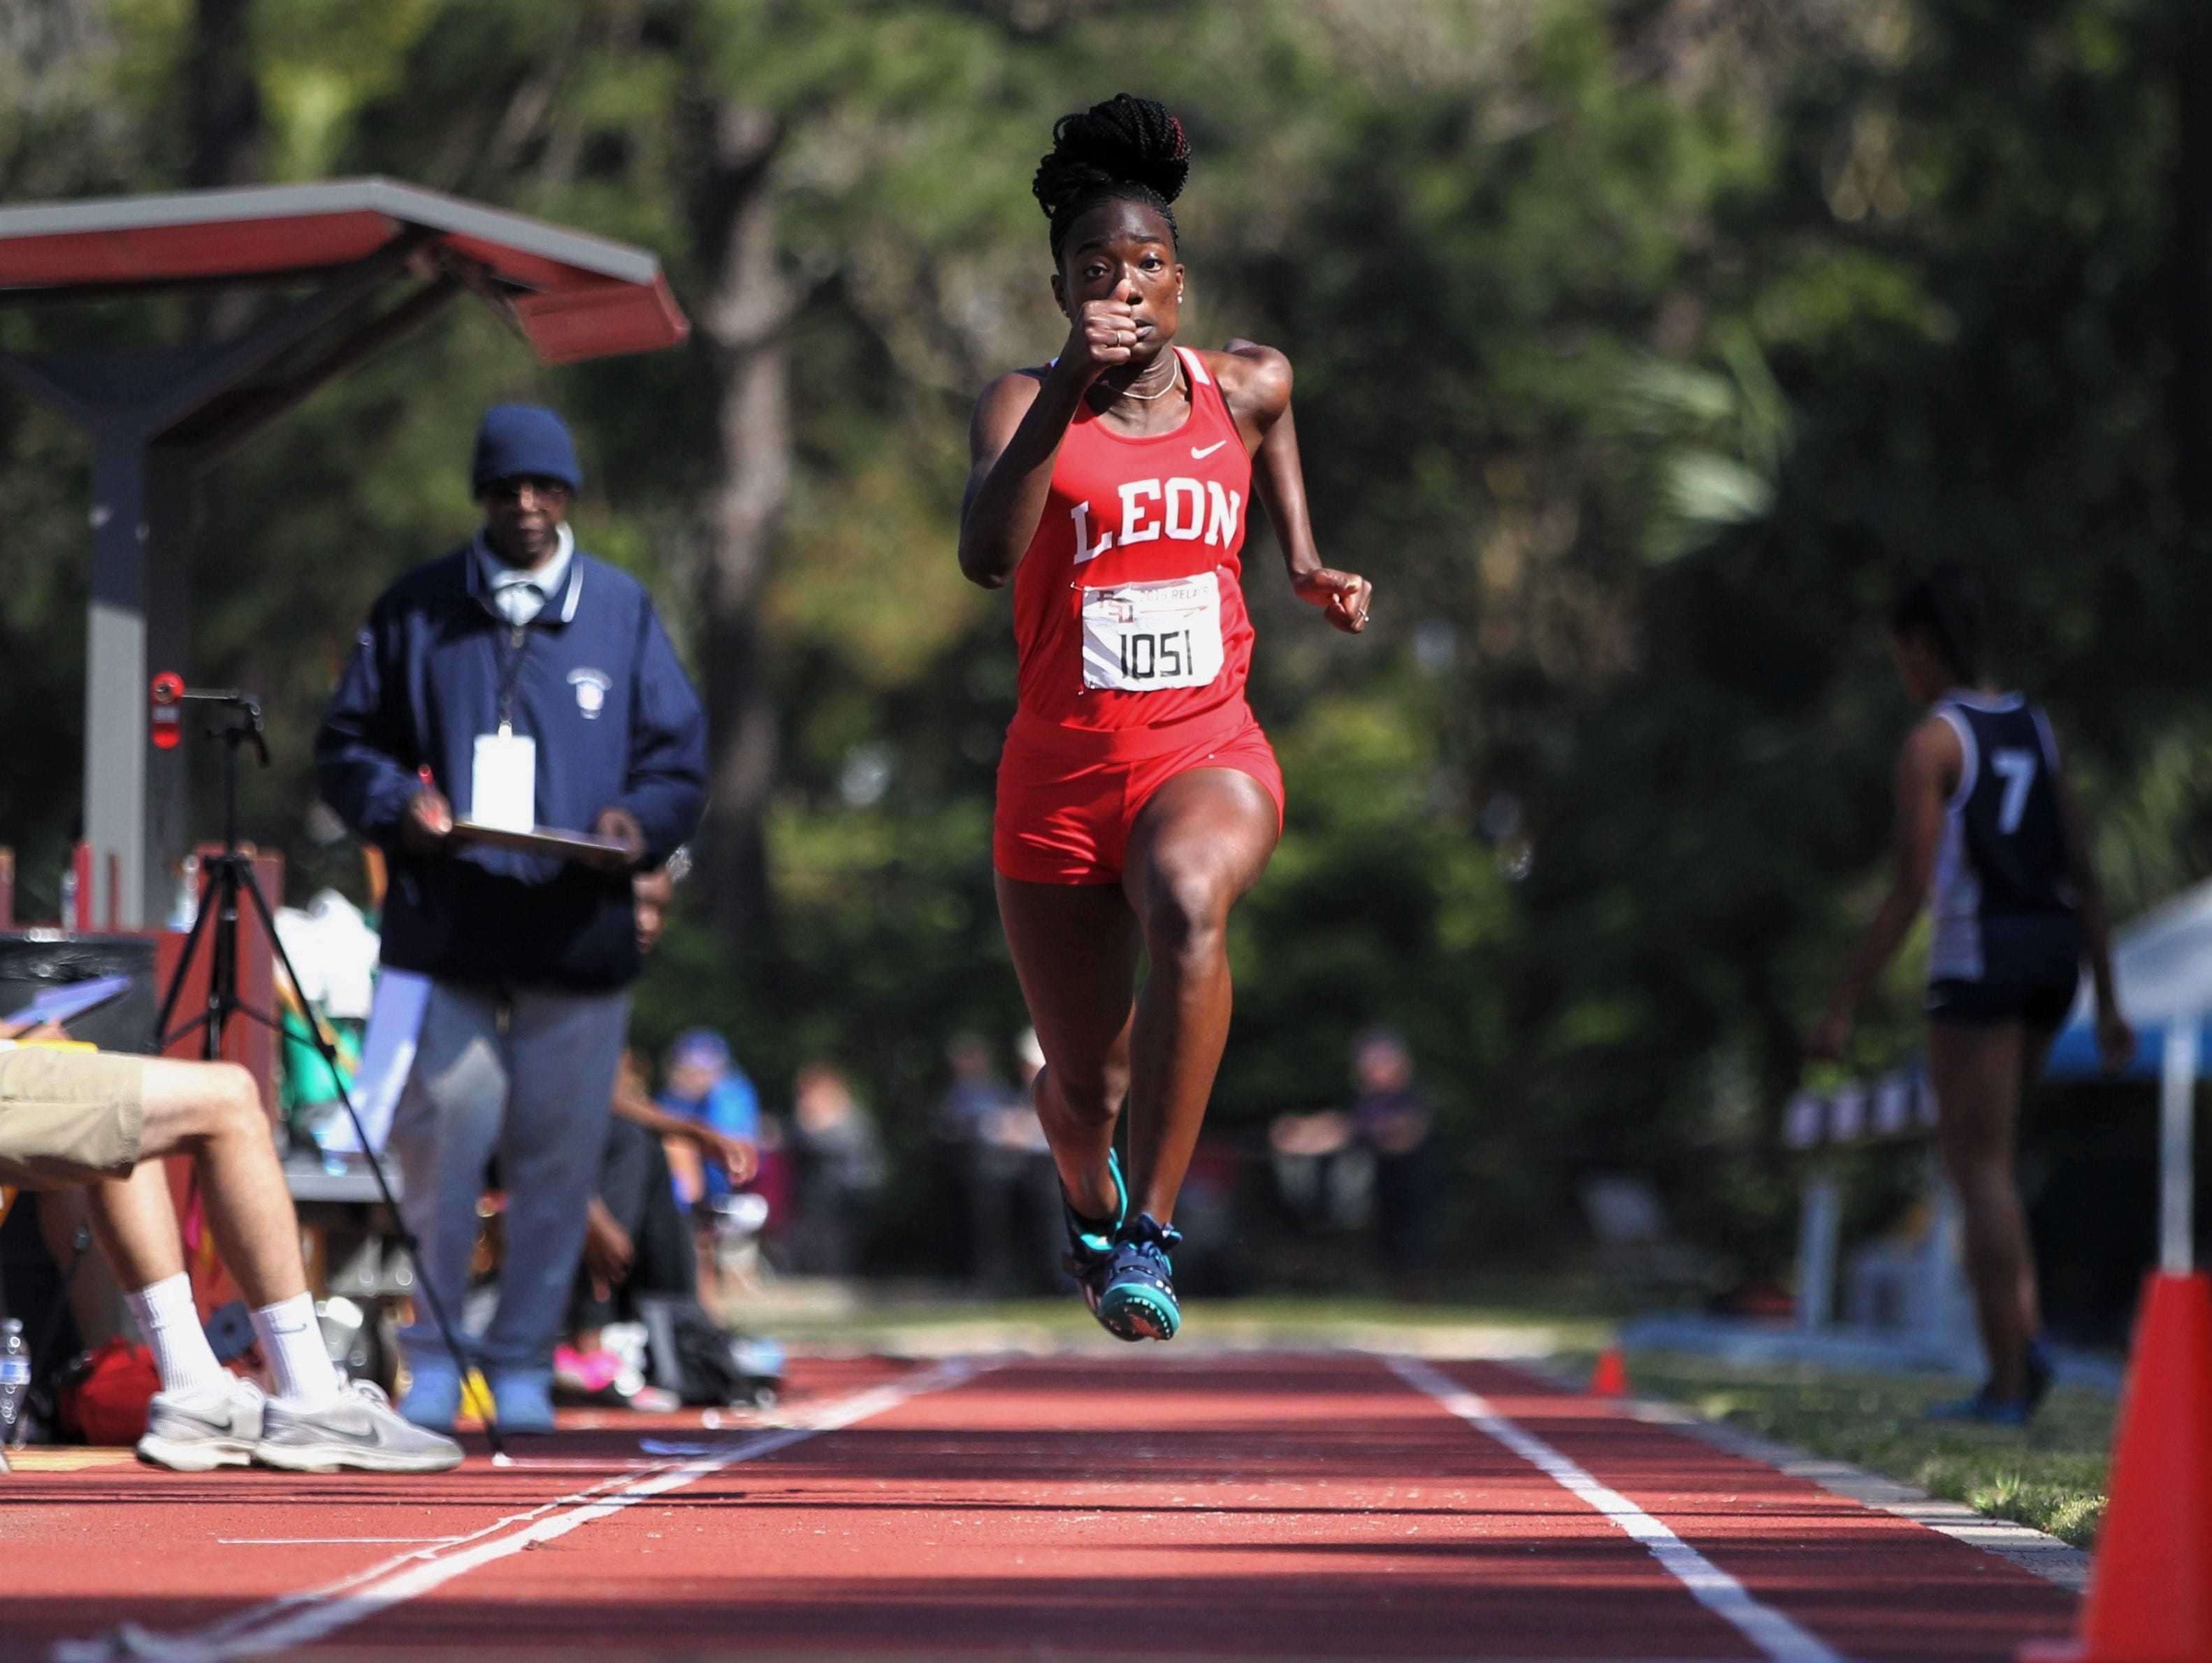 Leon sophomore Nadia Collins long jumps during the 40th annual FSU Relays at Mike Long Track on Saturday, March 23, 2019.